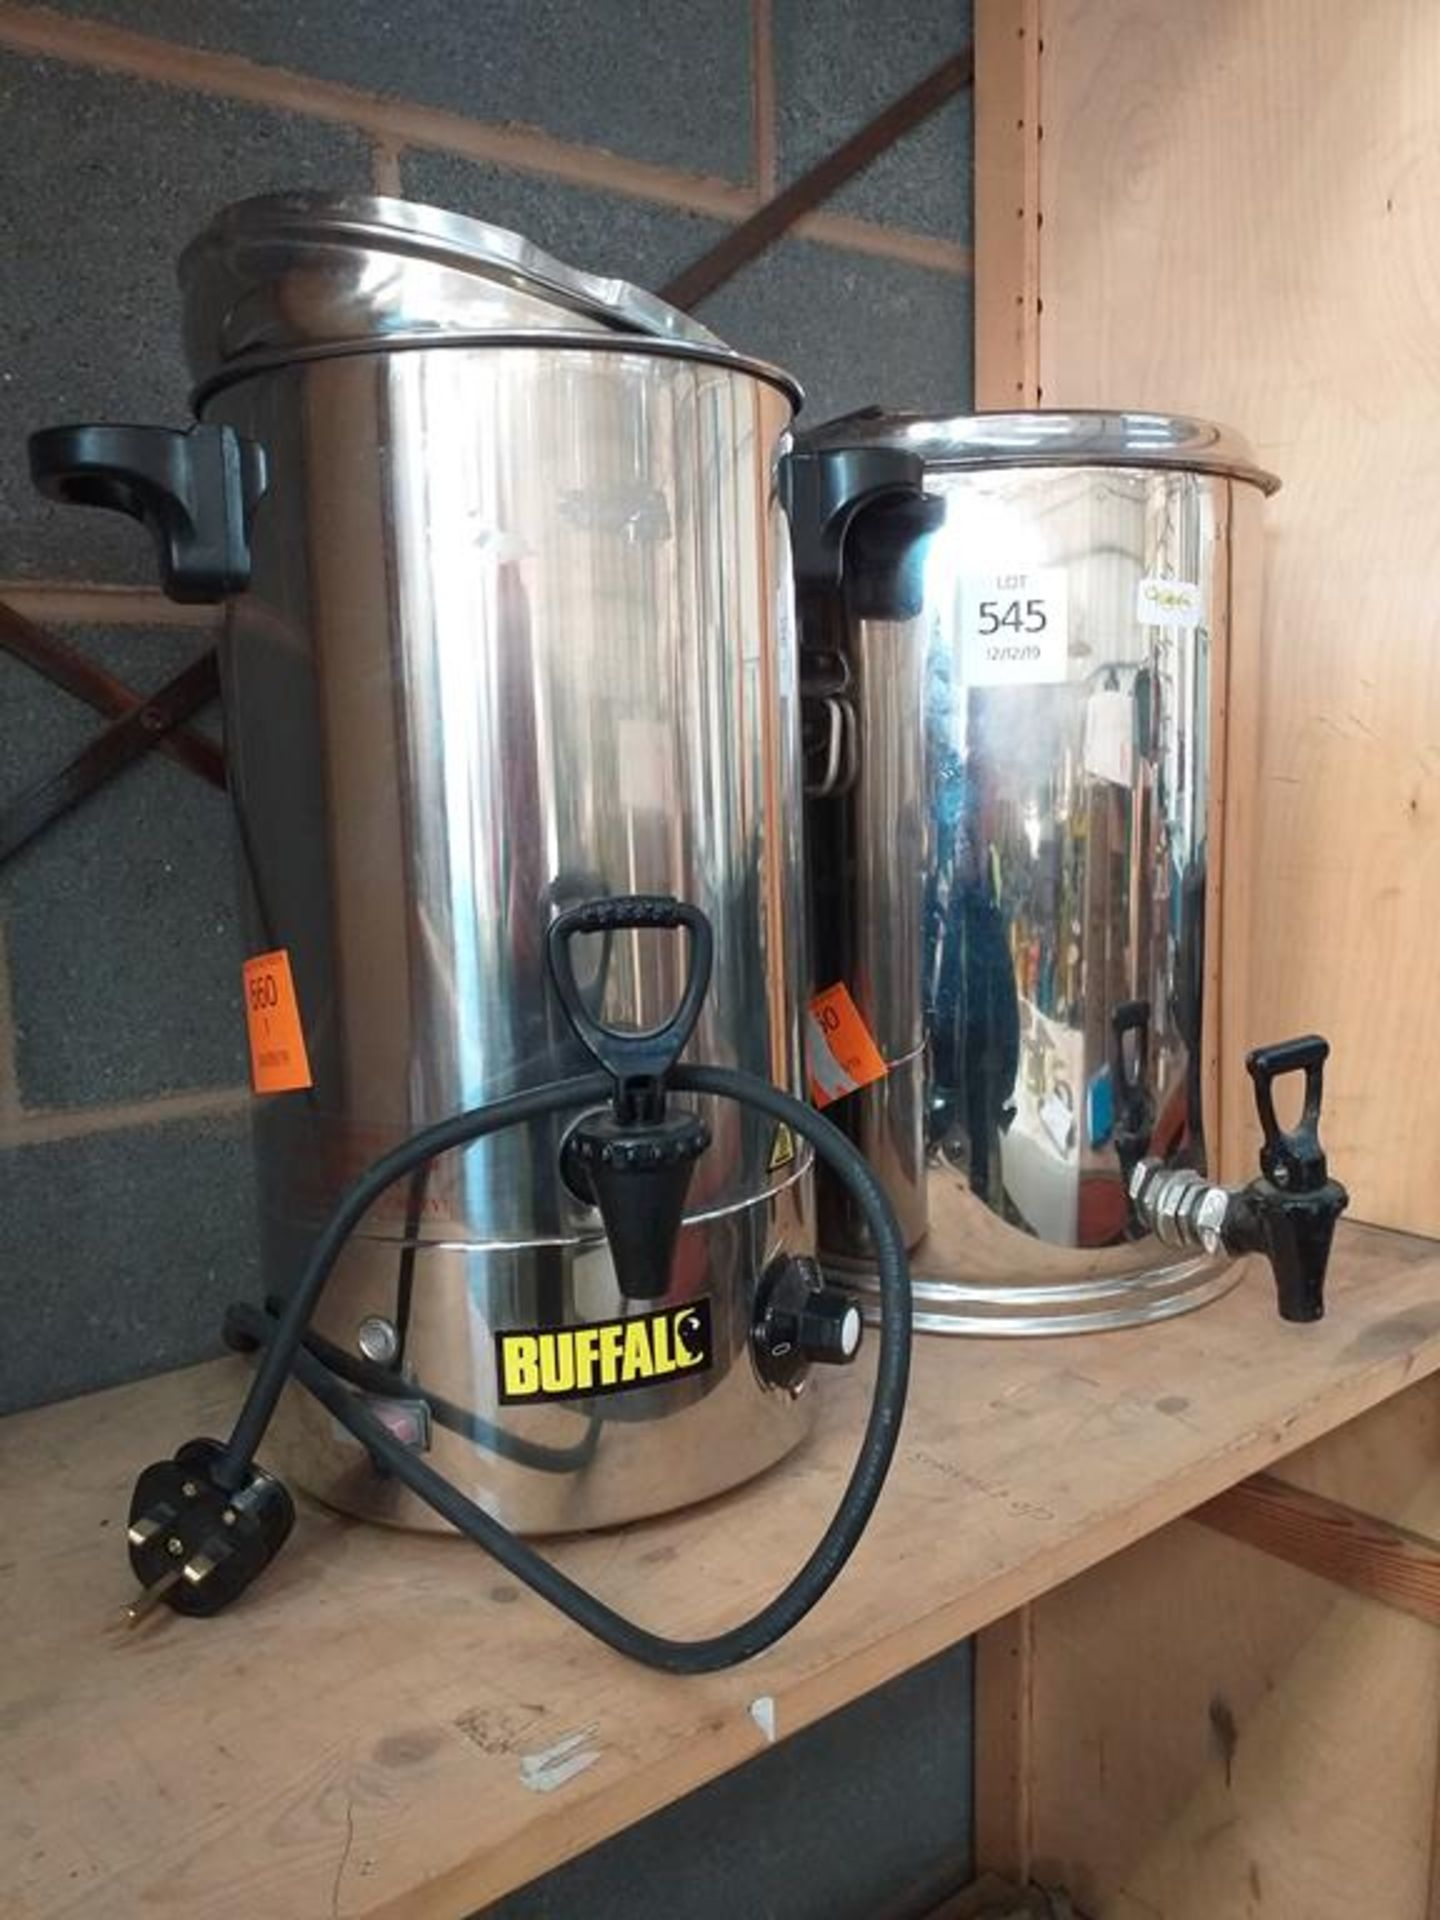 Lot 545 - Buffalo Water Heaters